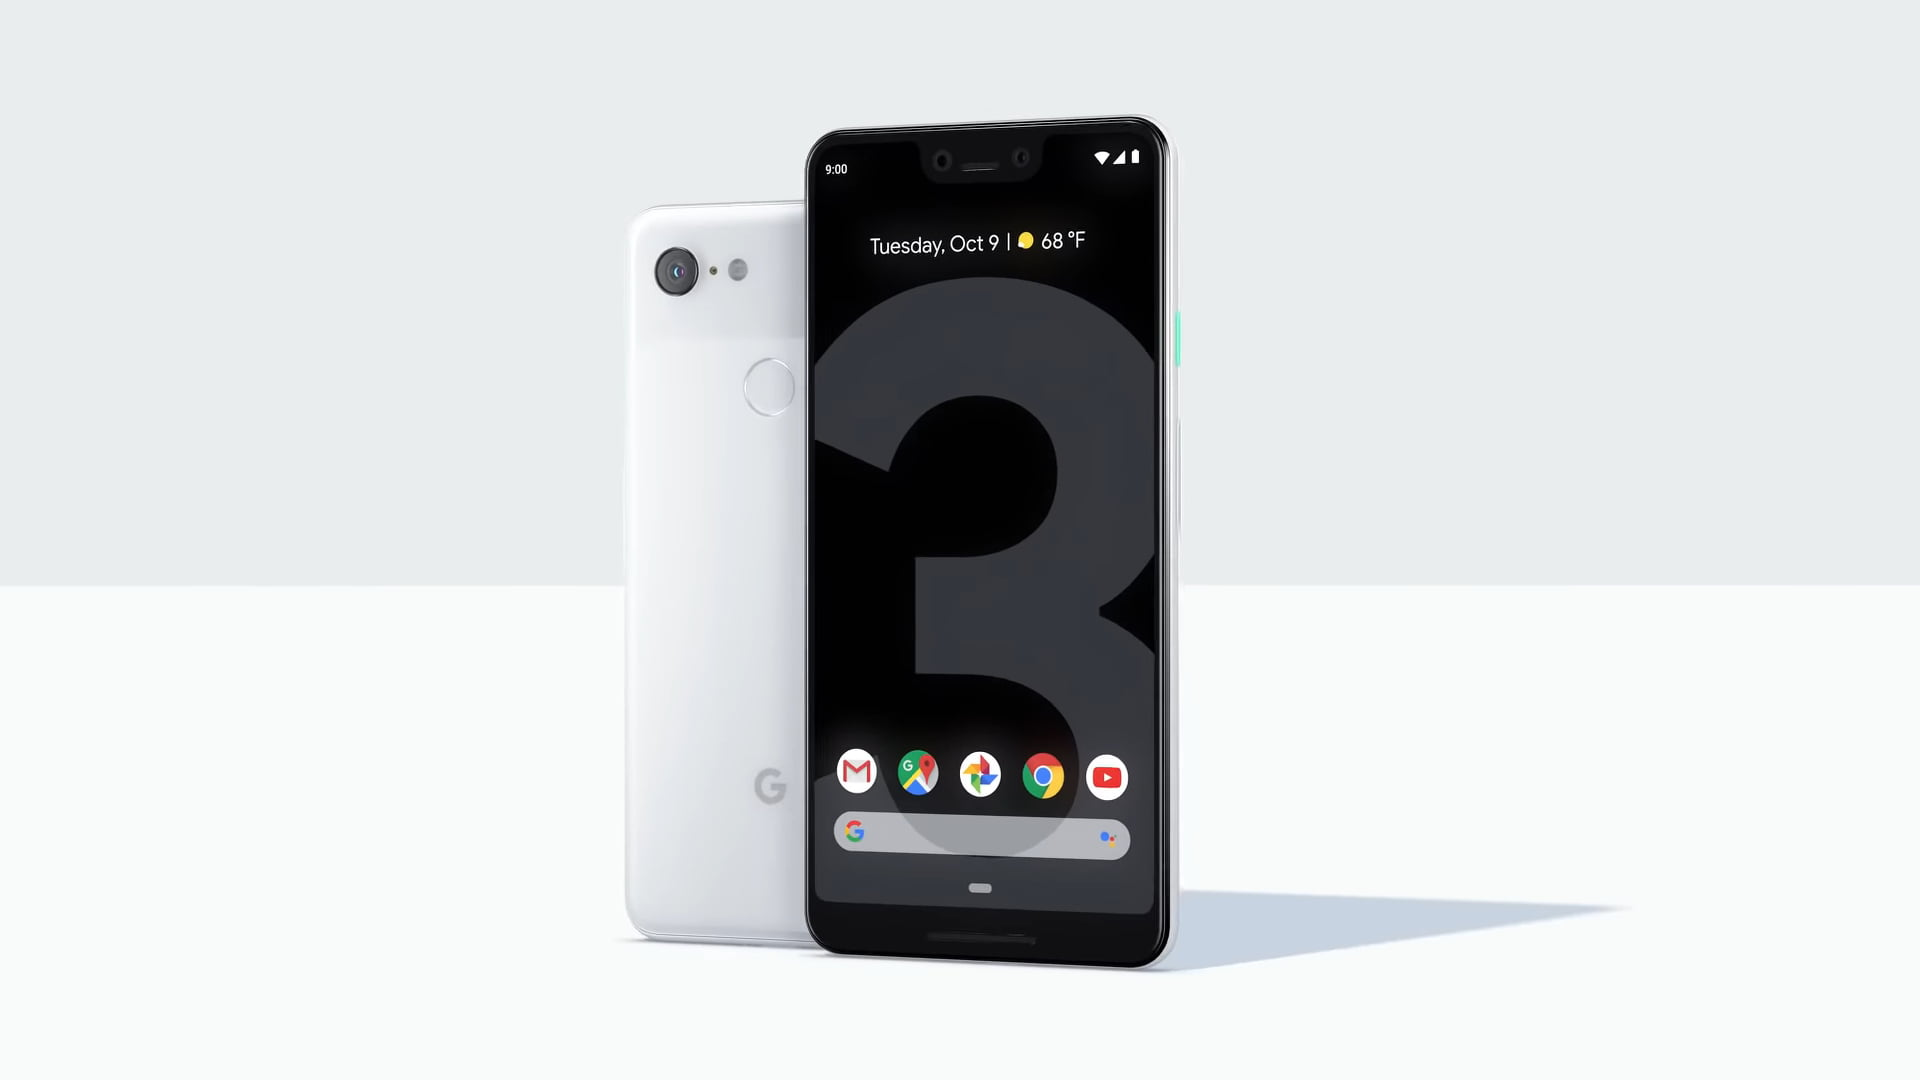 Google teases new Pixel phones and a May 7th launch event